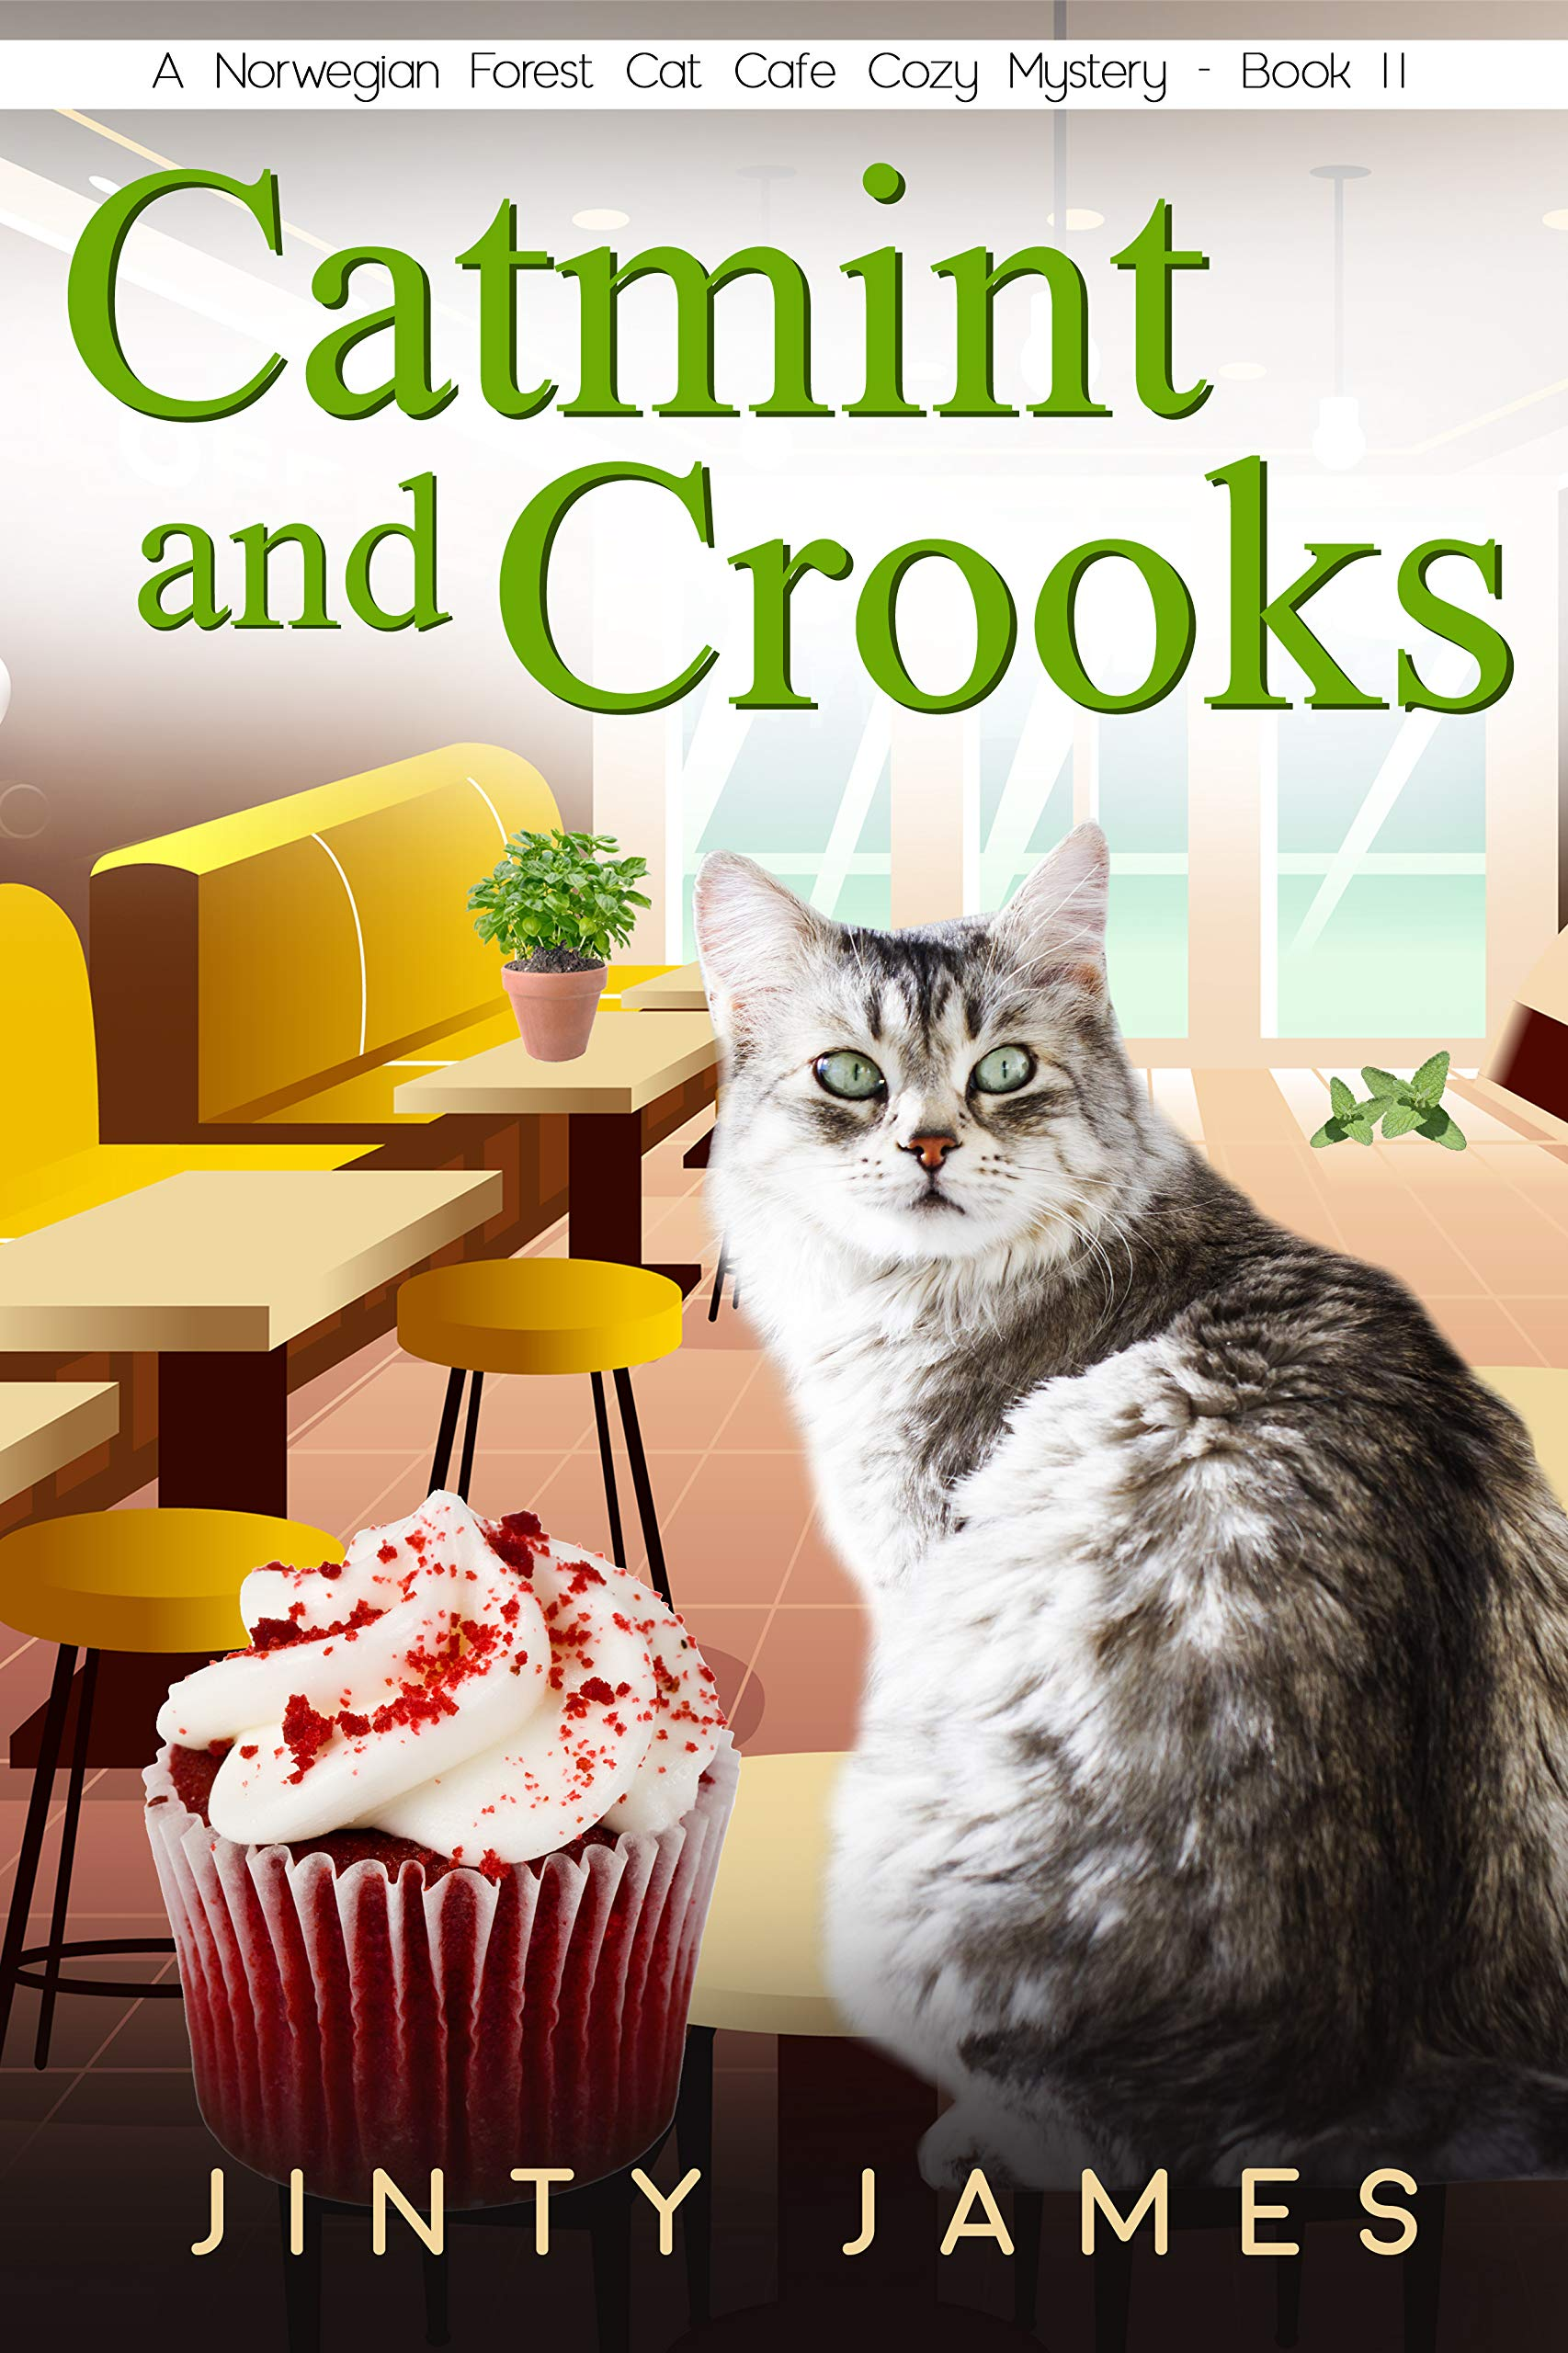 Catmint and Crooks: A Norwegian Forest Cat Café Cozy Mystery – Book 11